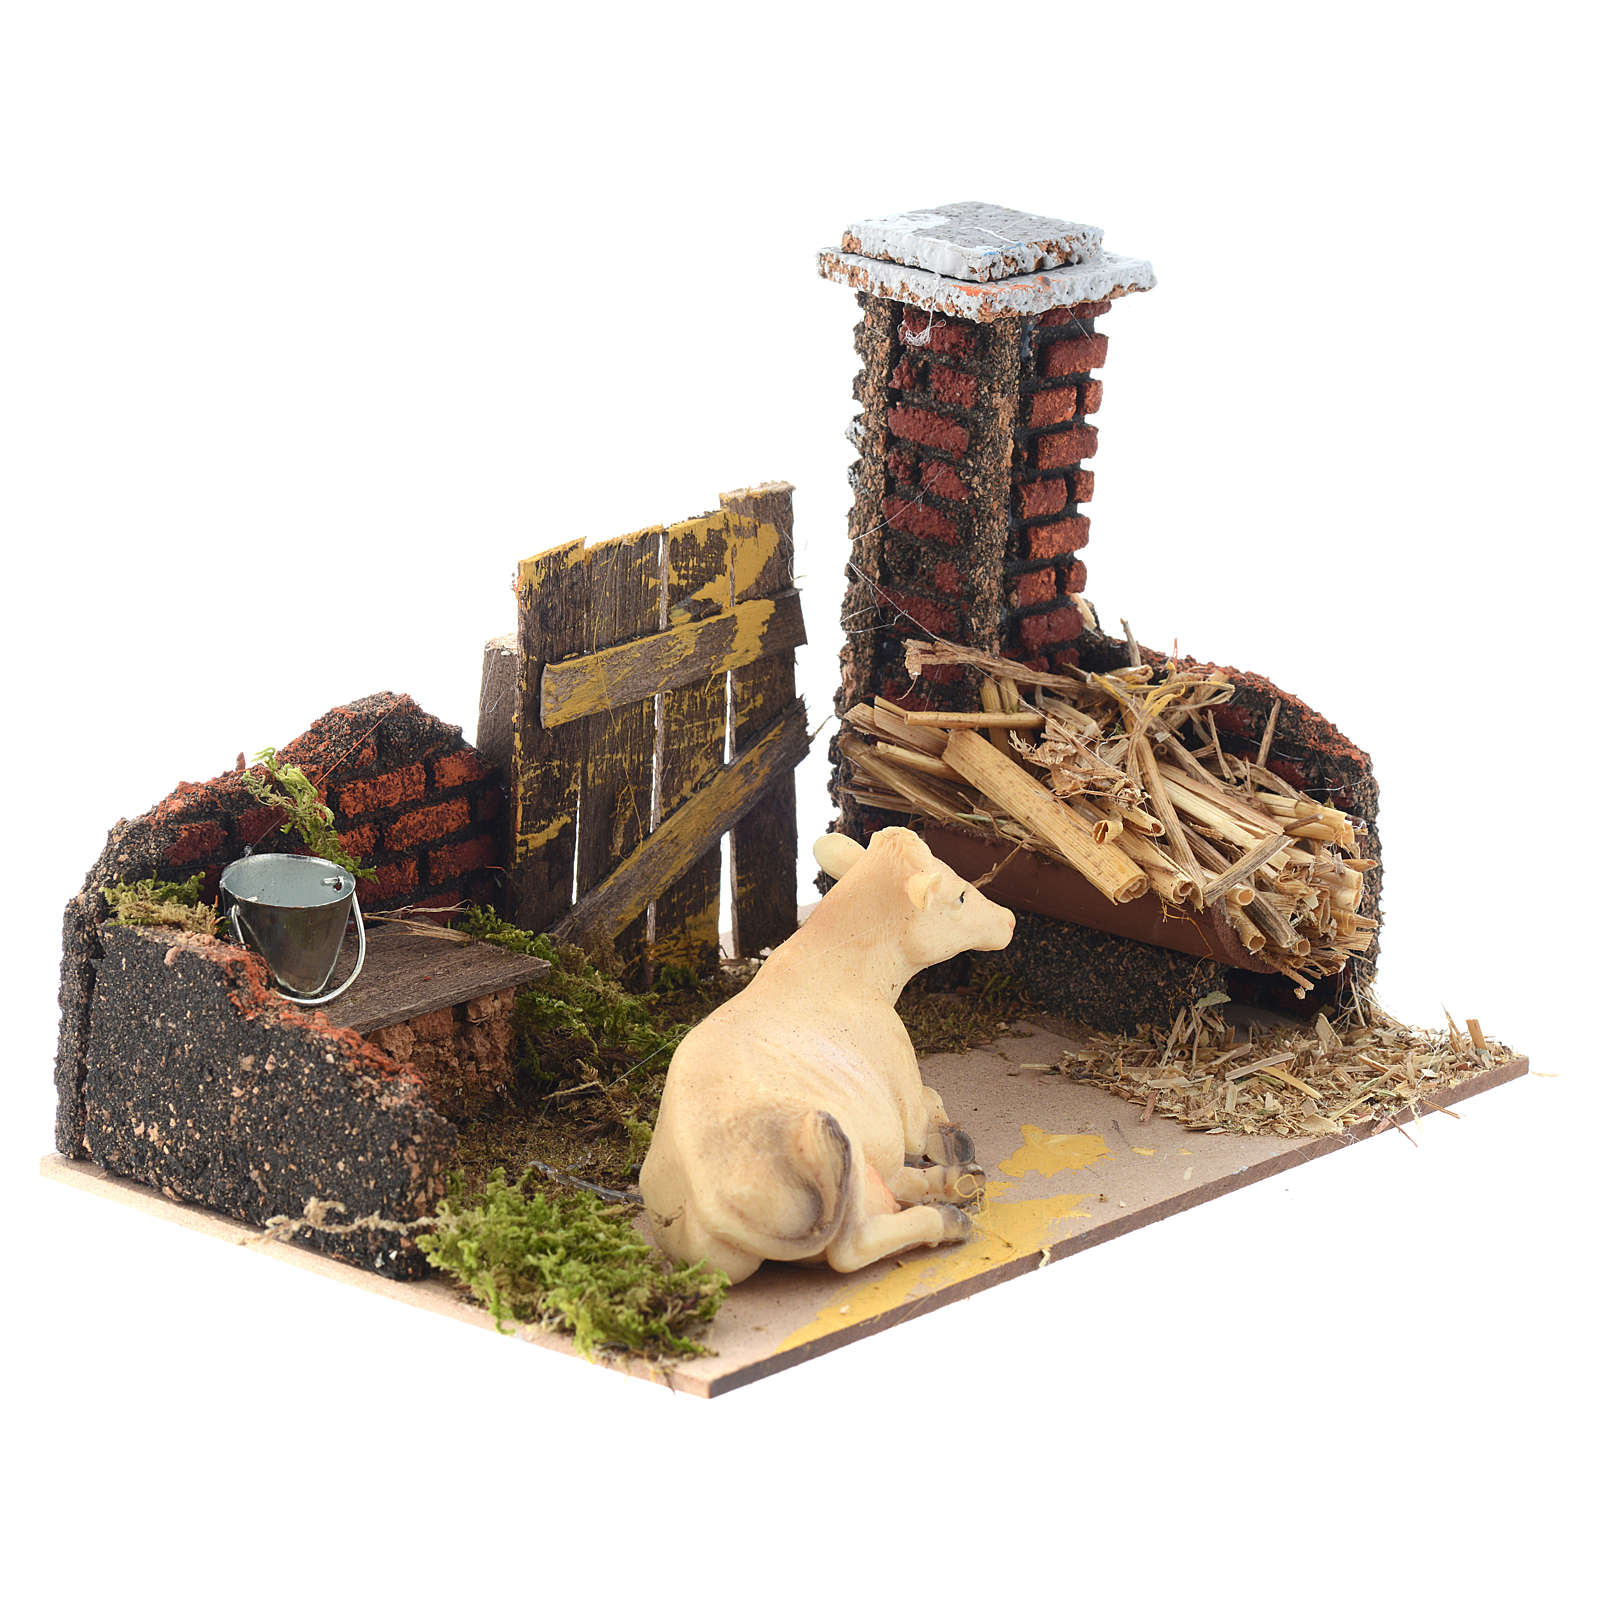 Nativity setting with cow and manger 15x20x12cm 4